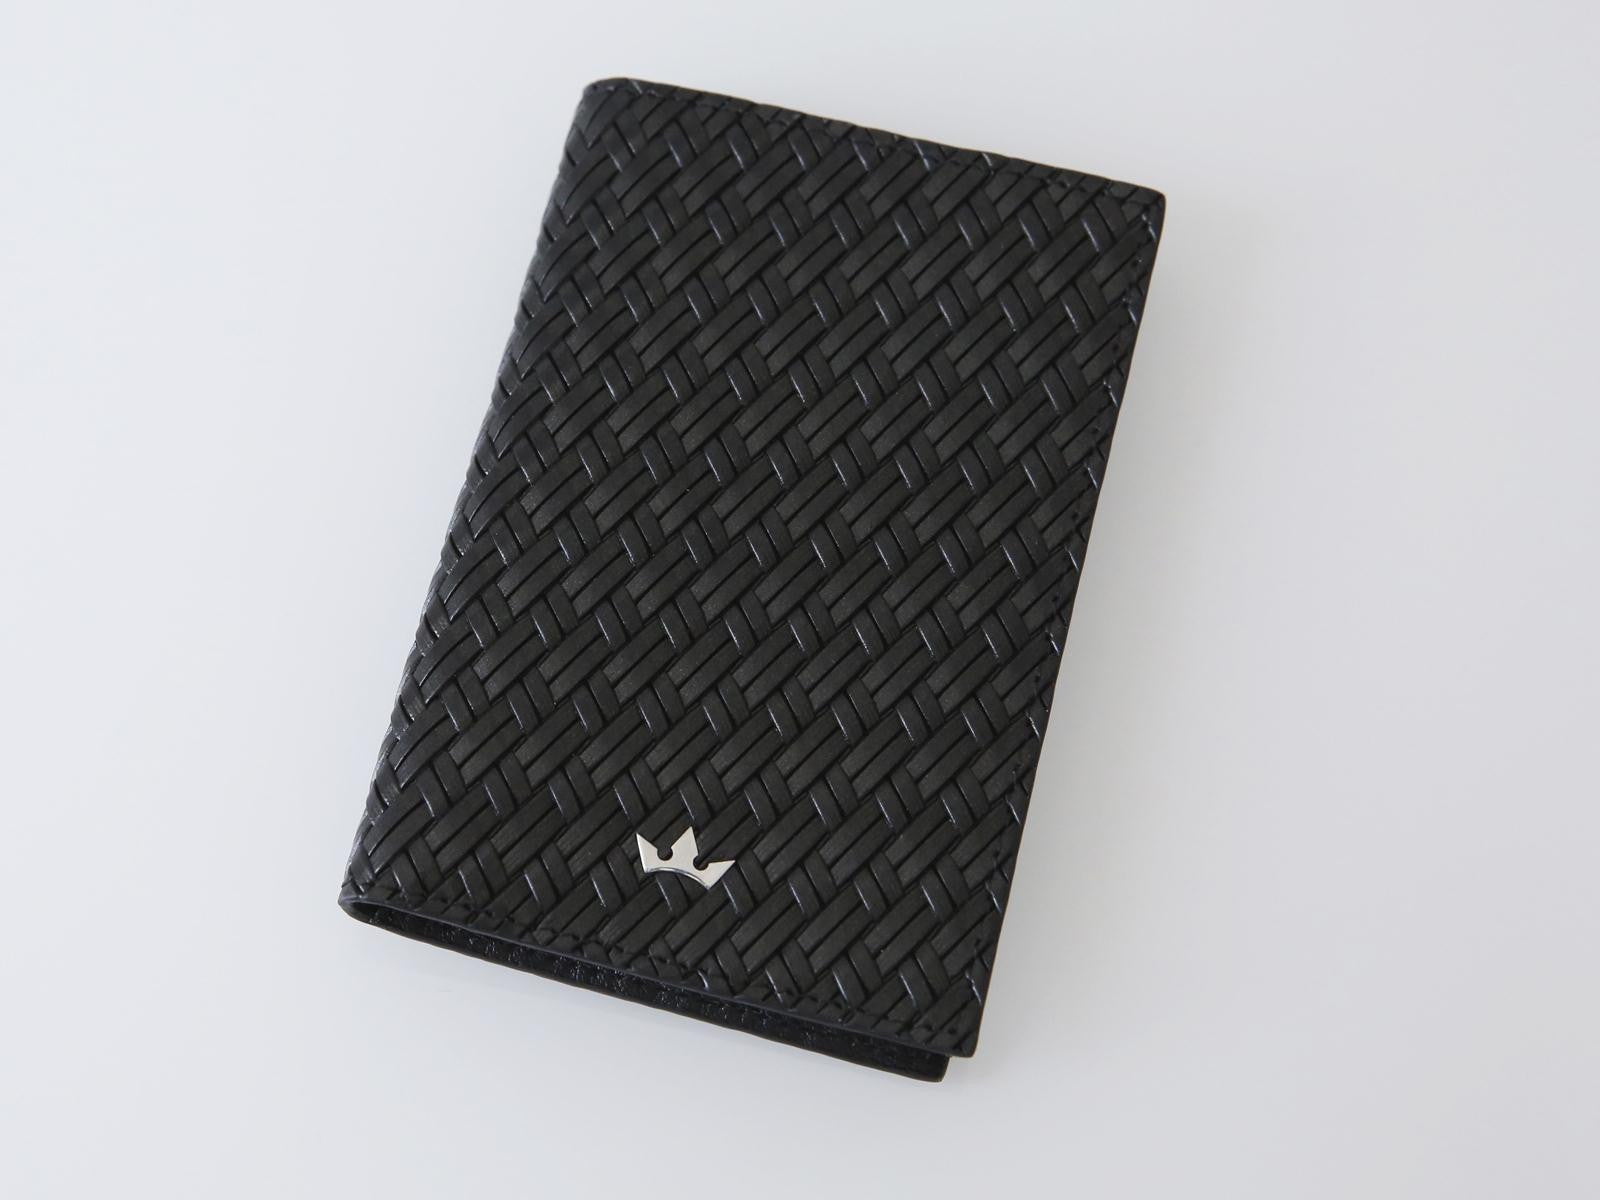 Roderer Card Holder Vertical Torino Black